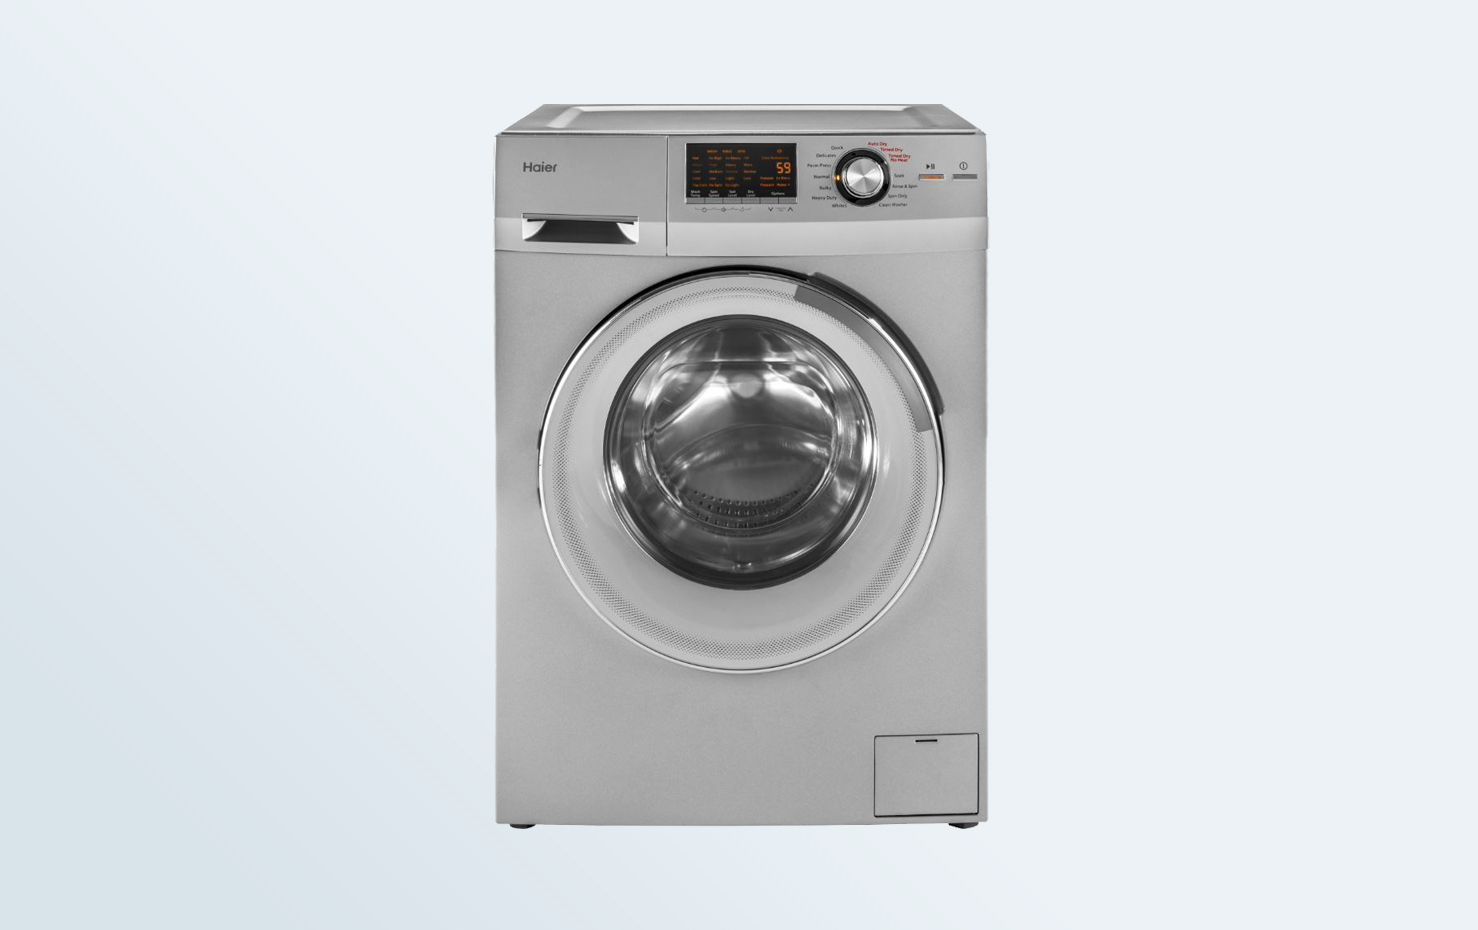 Best Washer-Dryer Combos 2019 - All-in-One Washer Reviews